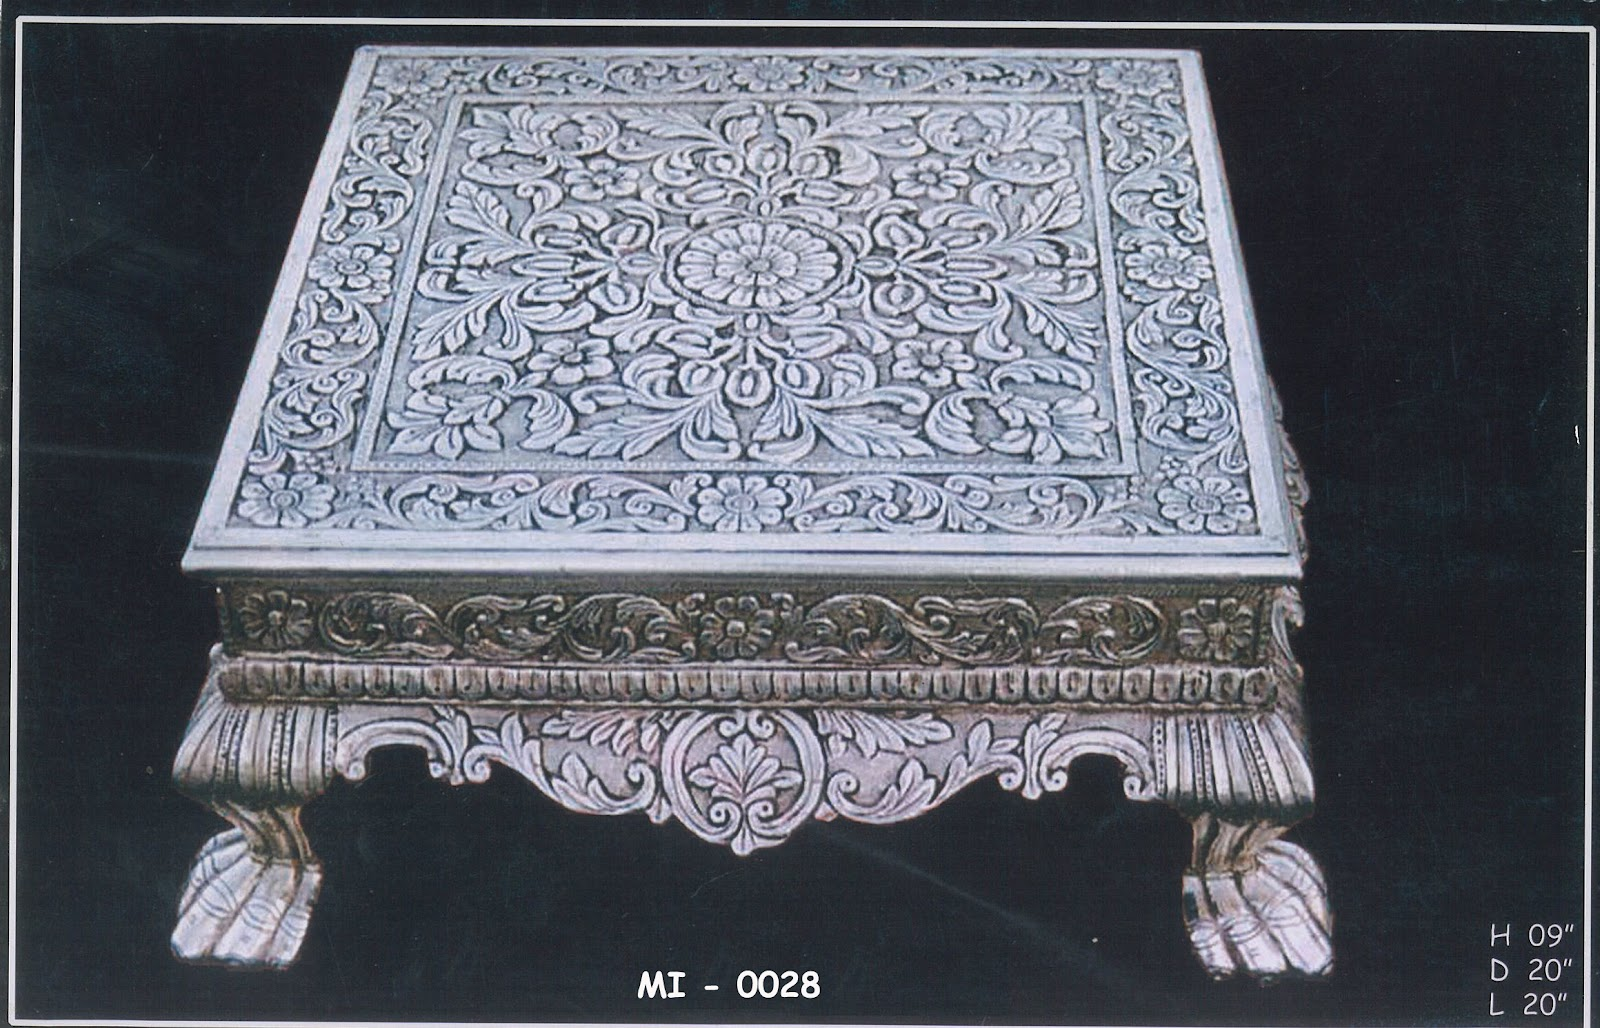 Antique Silver Wooden Furniture. Antique Silver Wooden Furniture   Indian Silver Handicraft